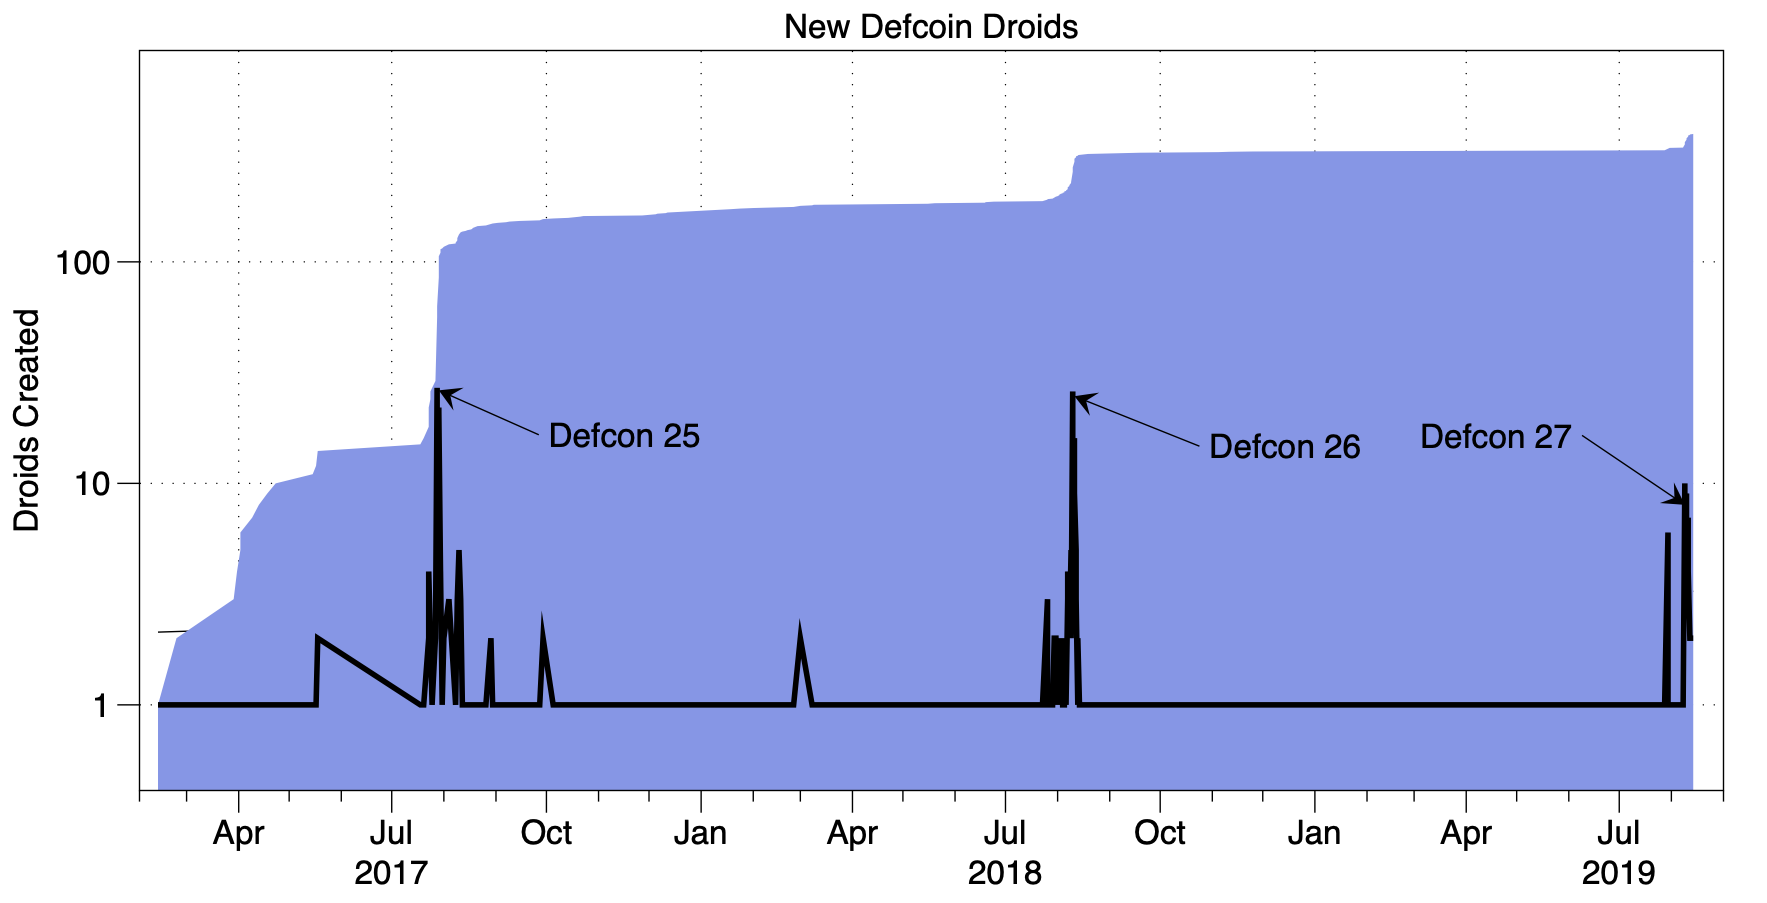 Droids-Created-Over-Time-and-Total-Droids--DC27